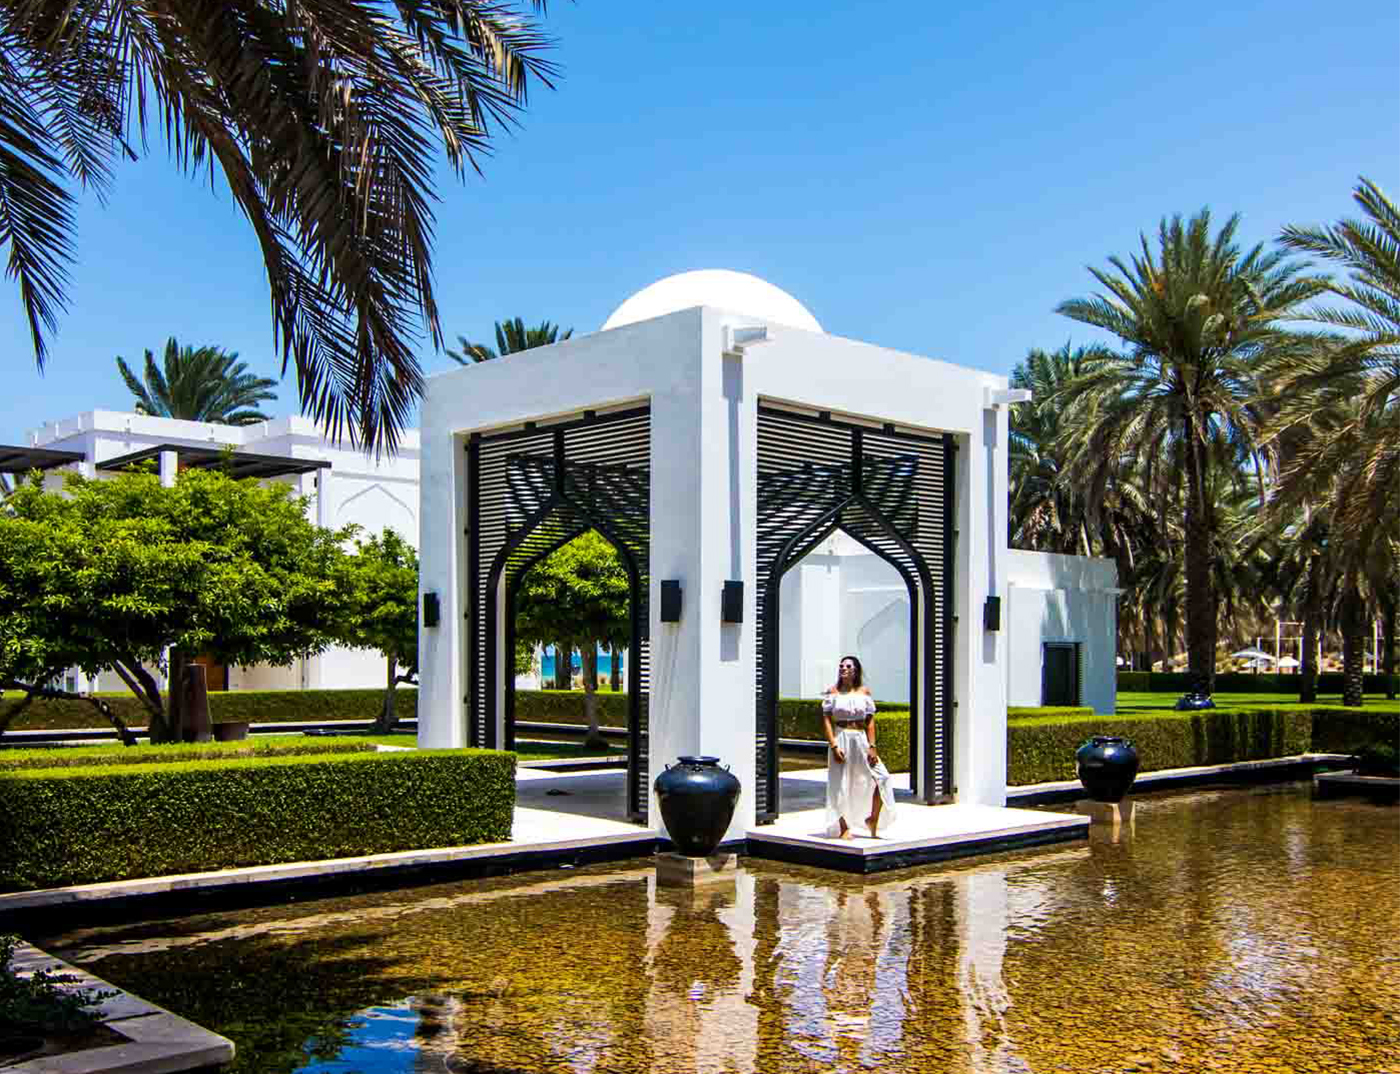 STAYING AT THE CHEDI MUSCAT